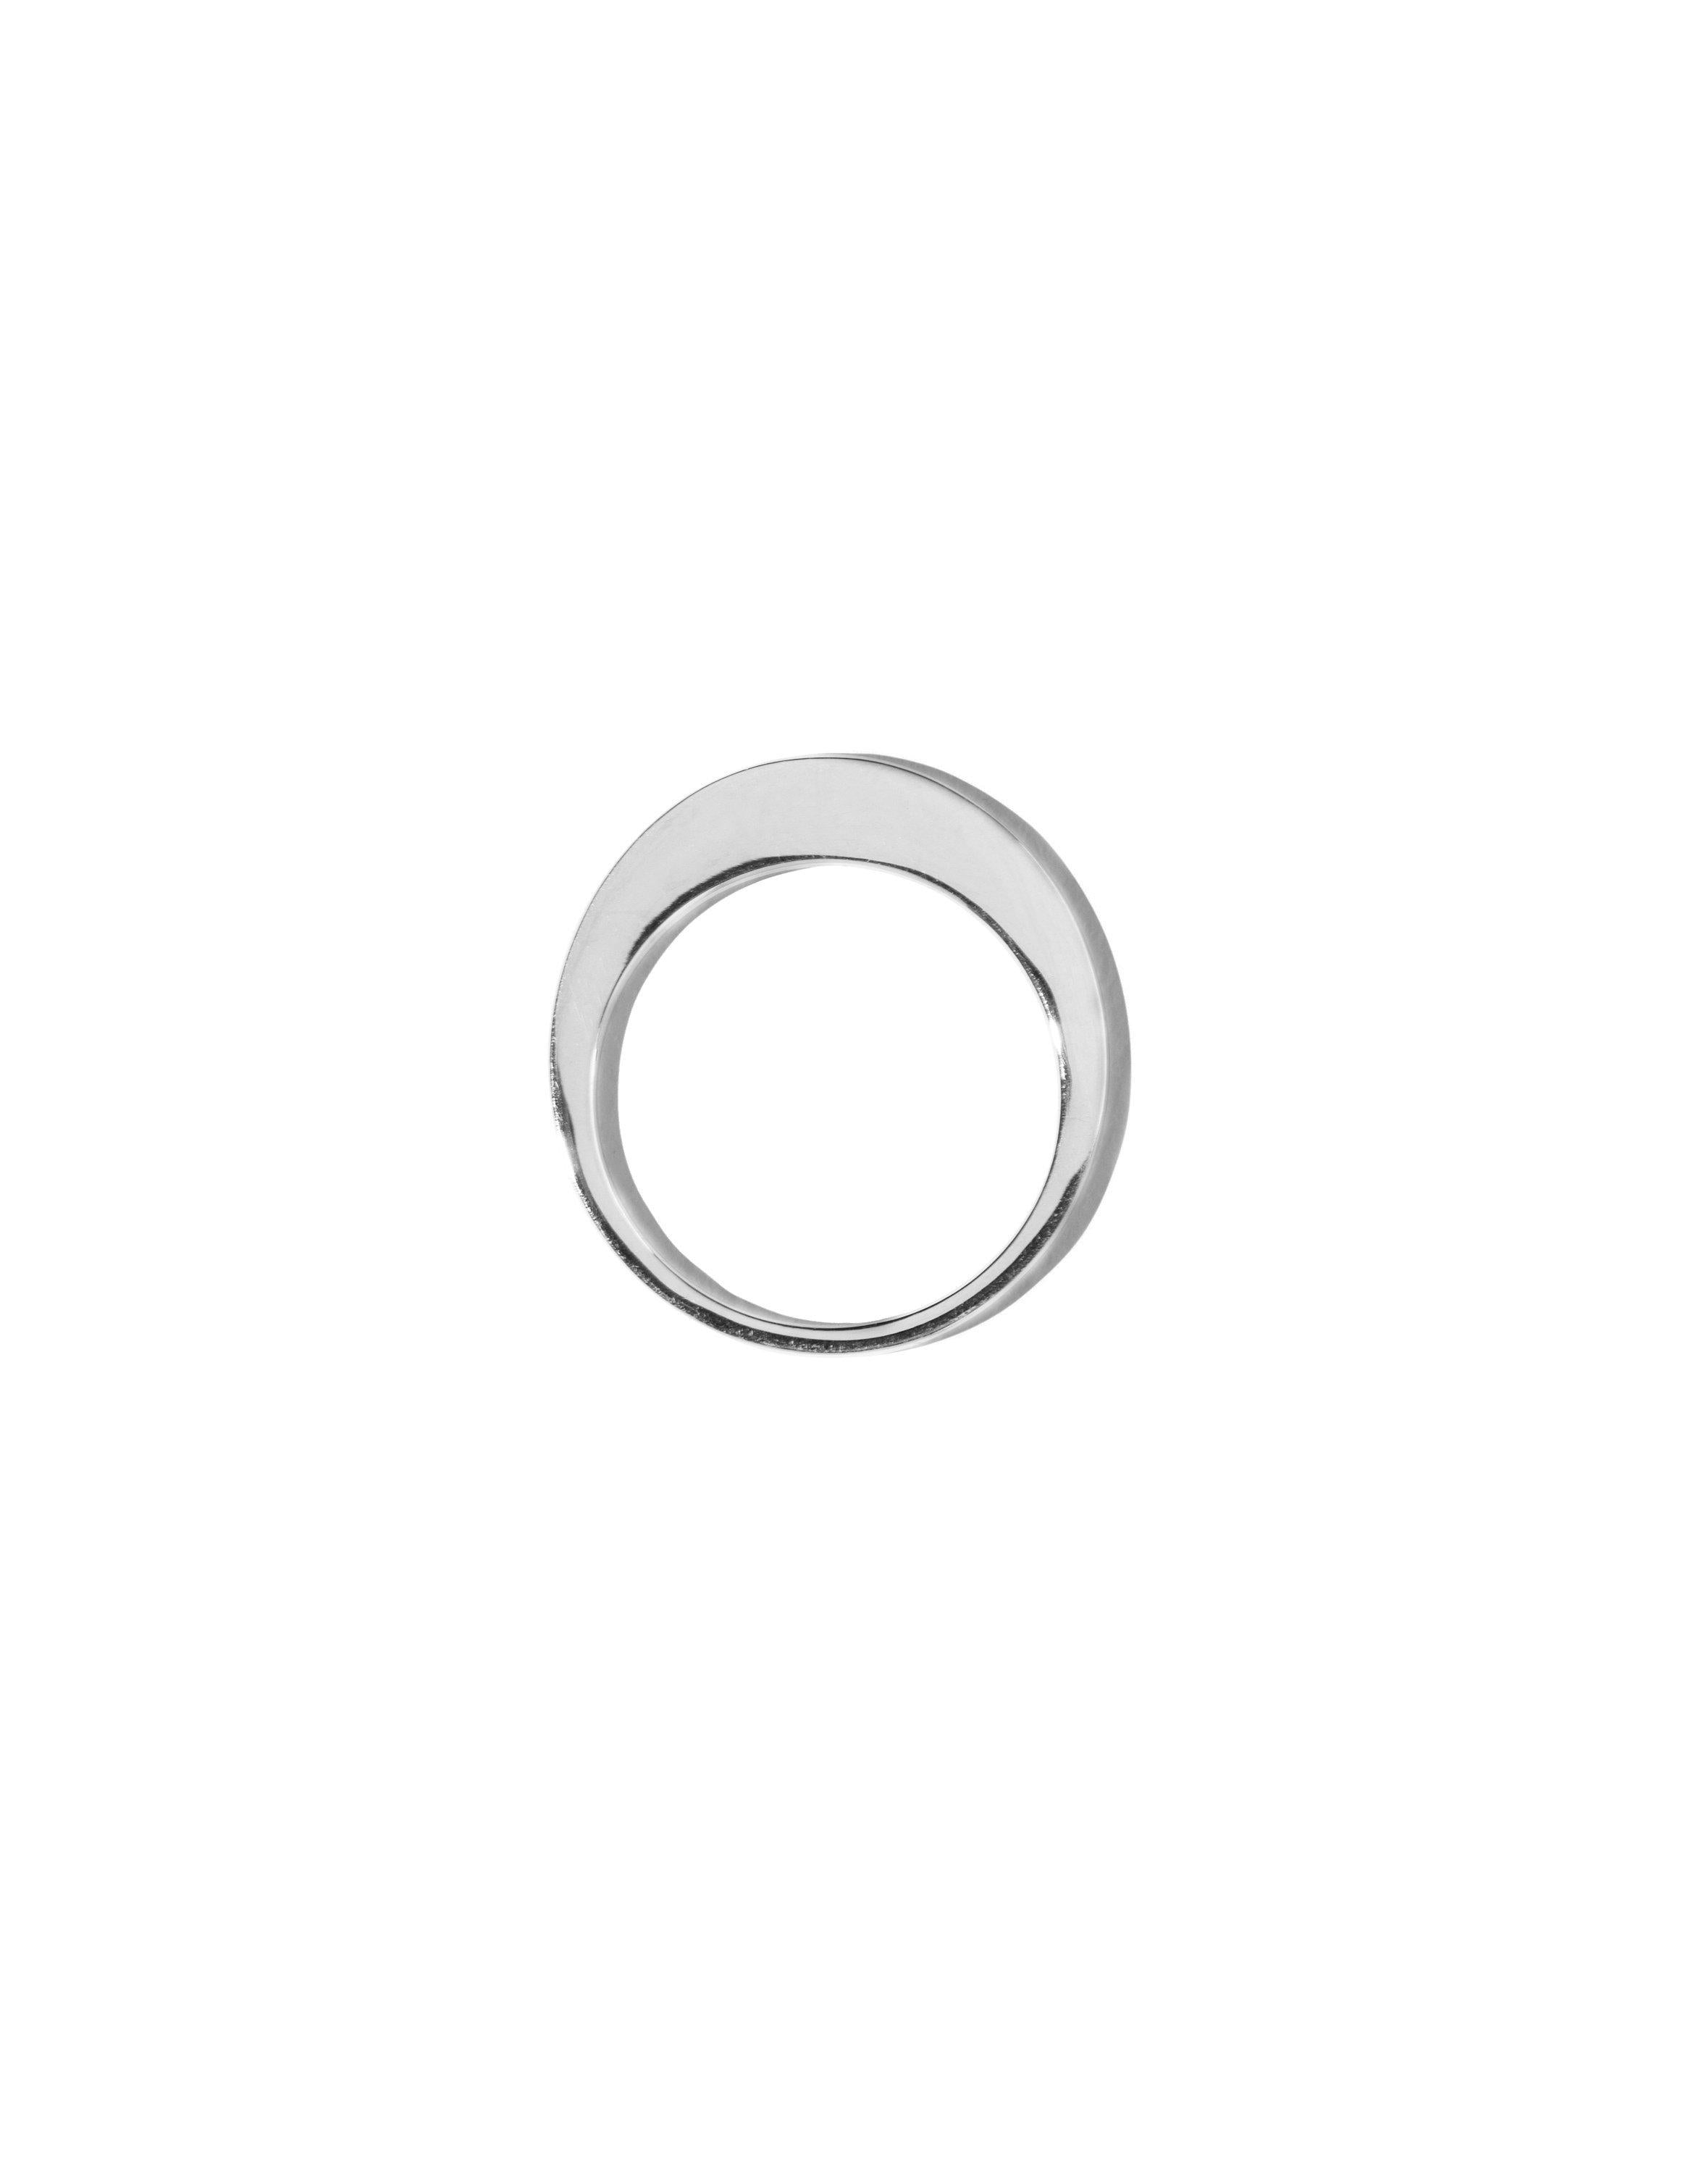 Ozone ring silver-The World Is Not Enough Collection -Overload Studios